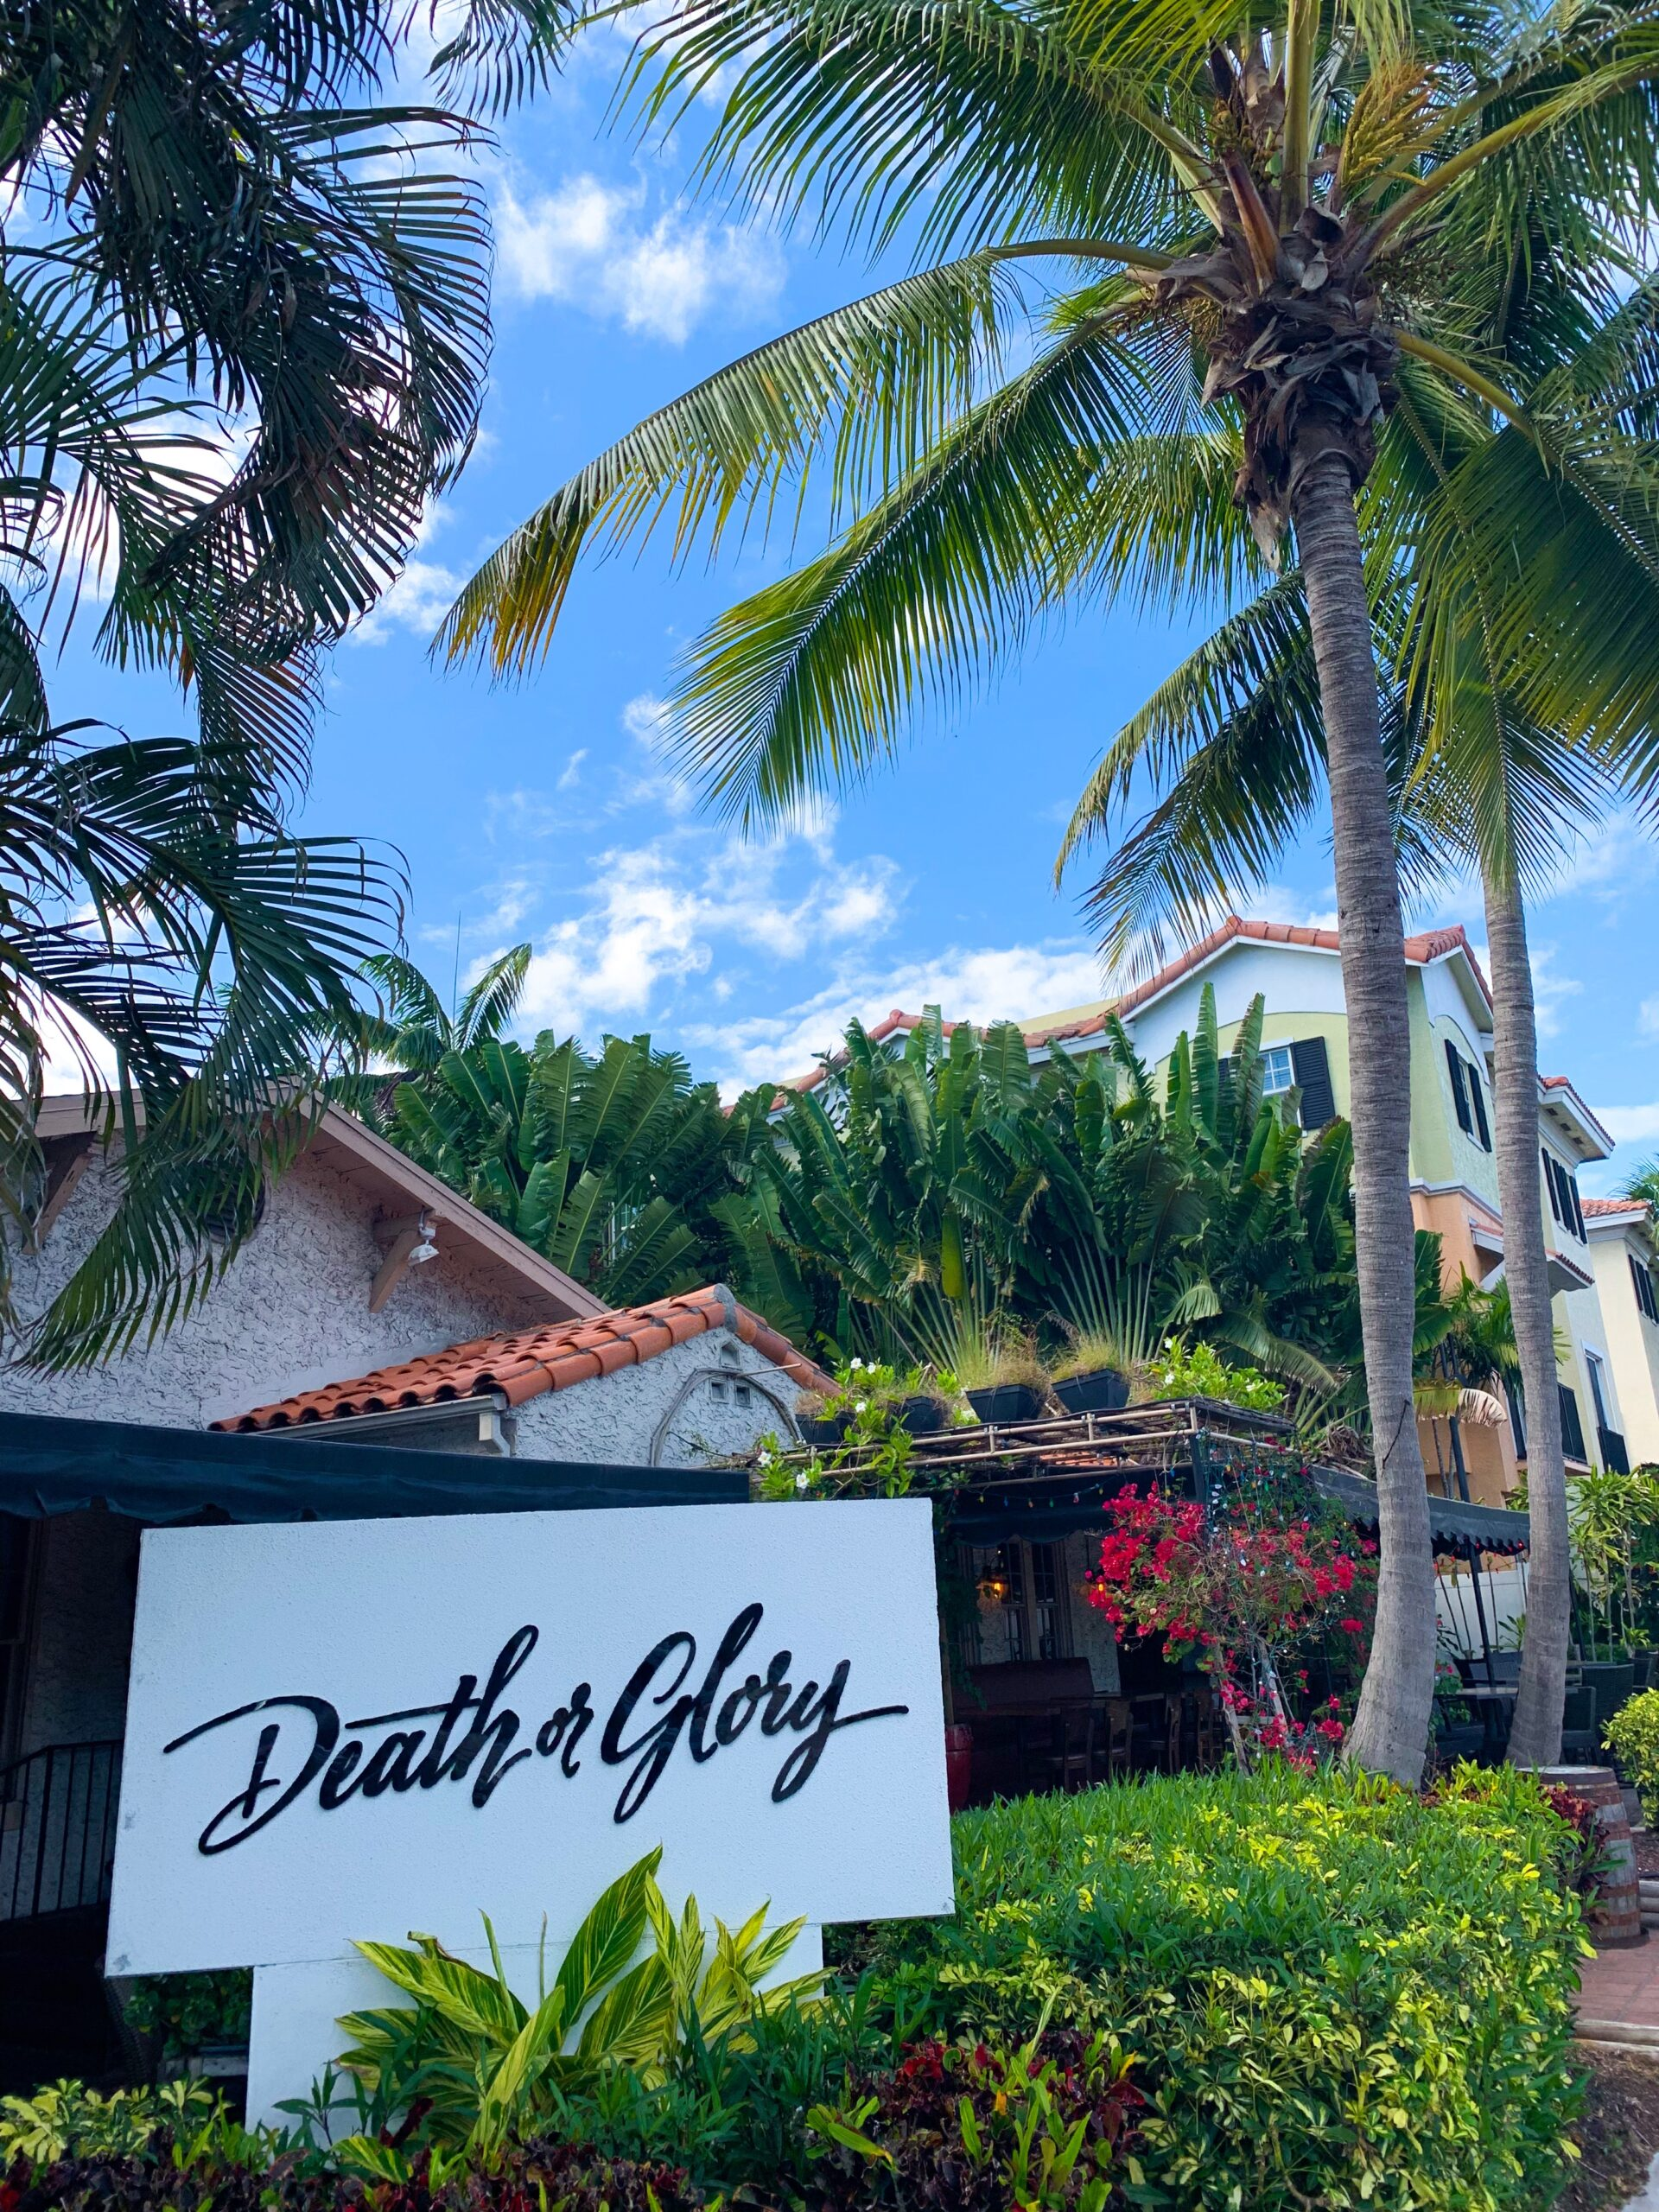 Death or Glory Bar in Delray